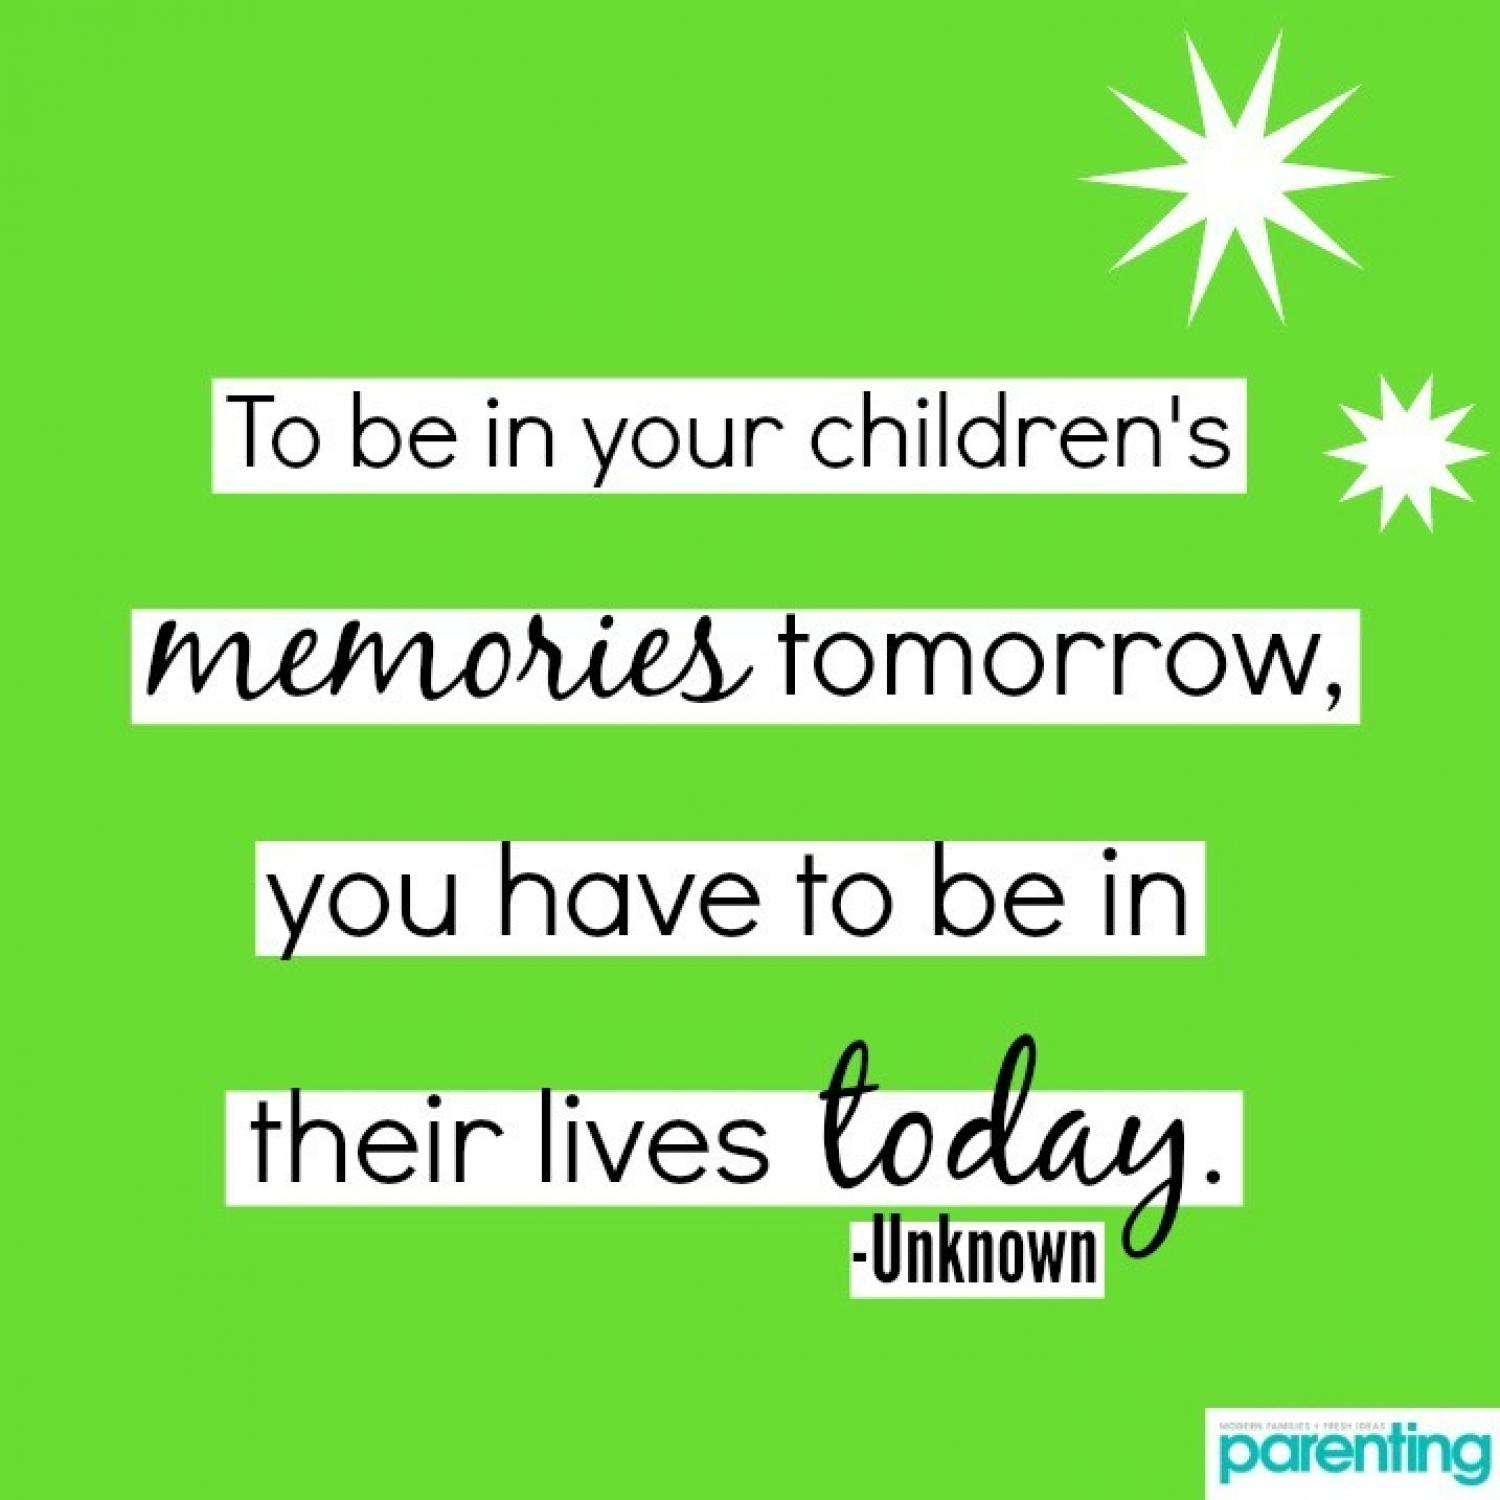 17 Amazing Parenting Quotes That Will Make You A Better Parent